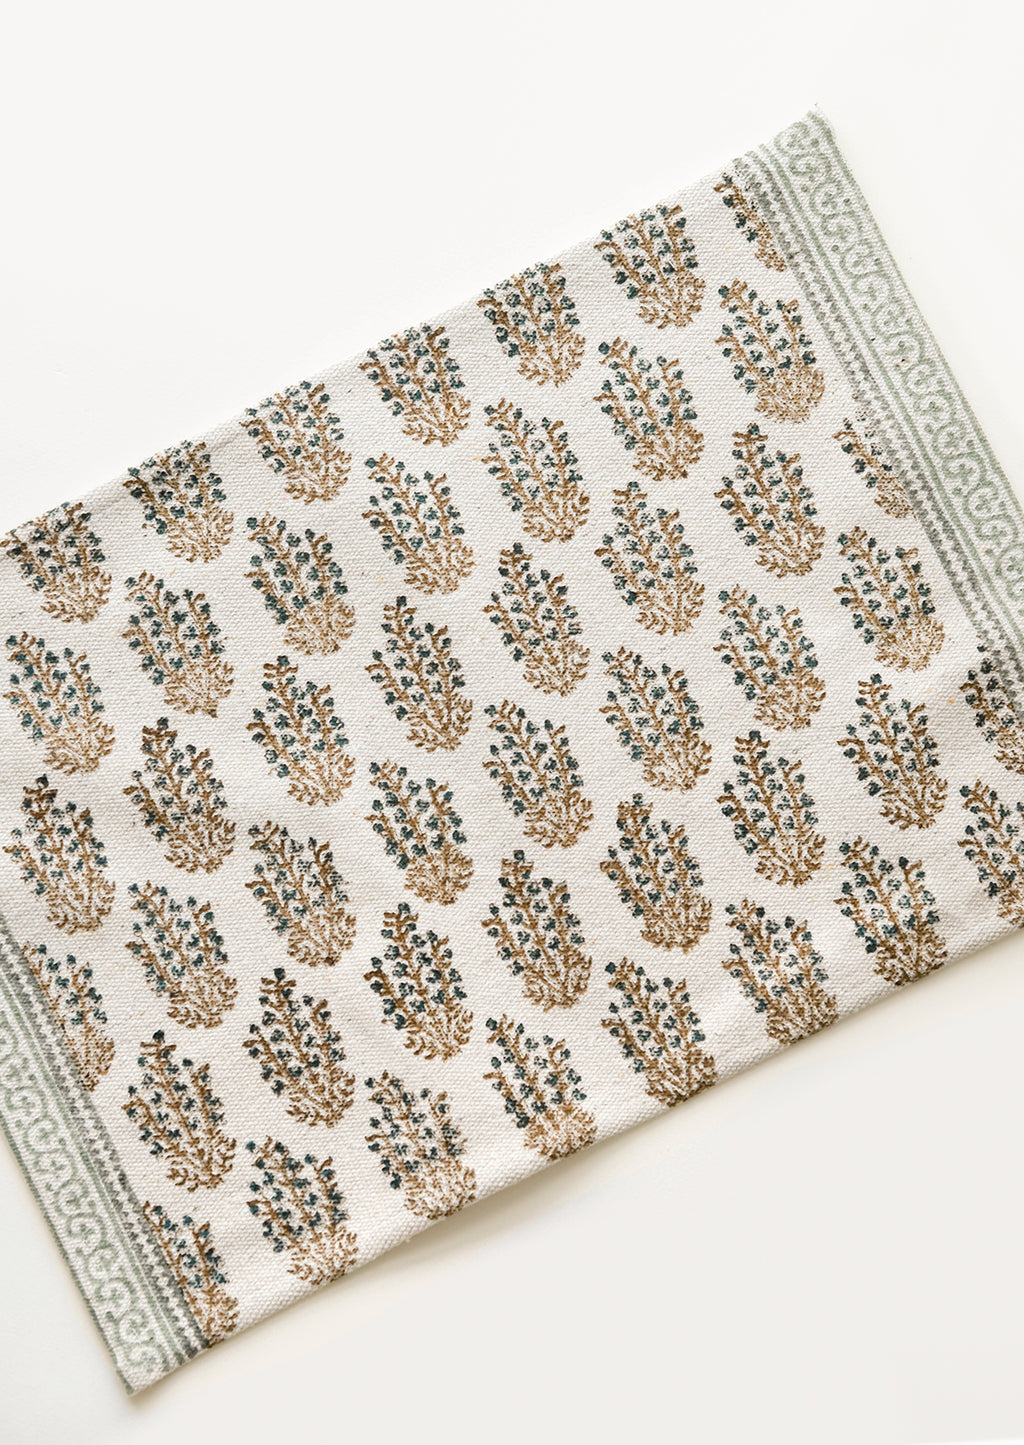 3: An ivory rectangular cotton placemat with green floral pattern.